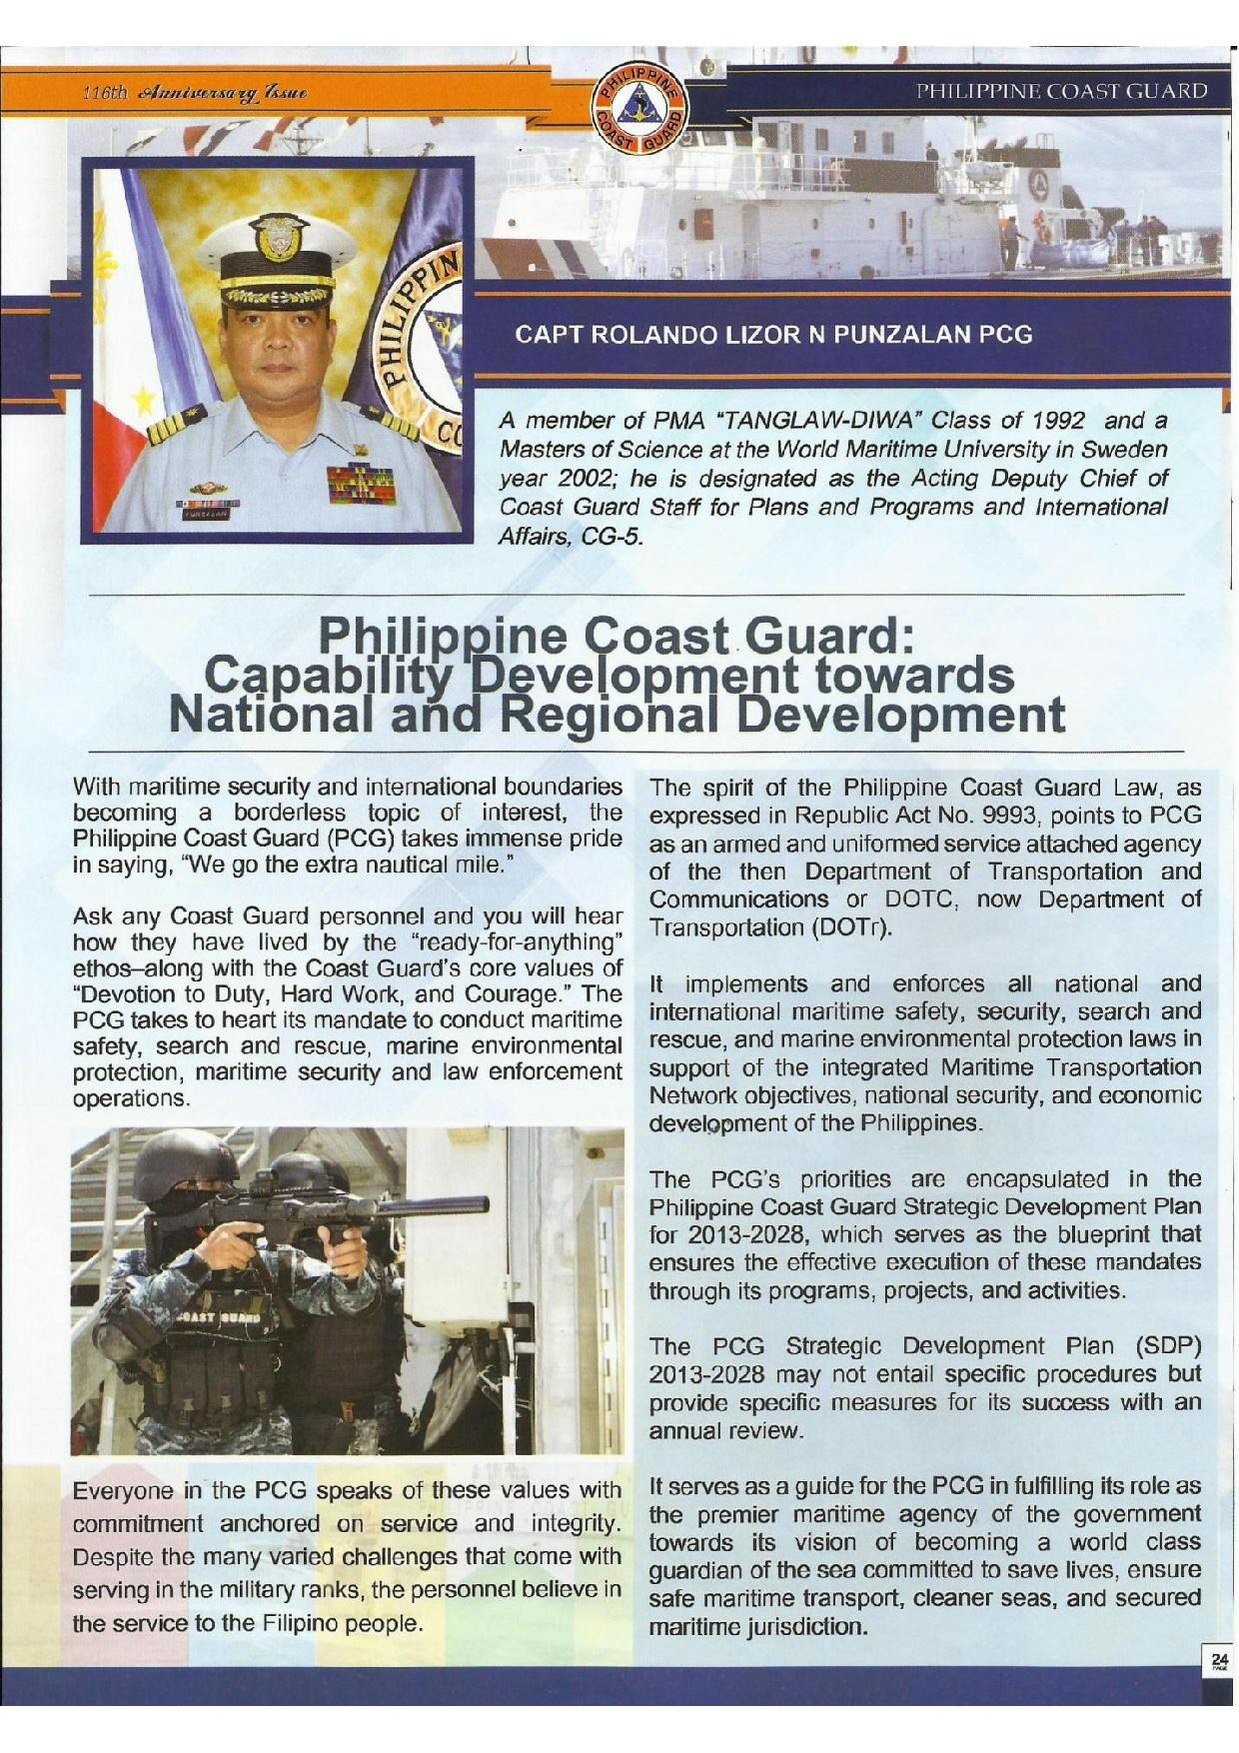 Filephilippine Coast Guard Capability Development Towards Original File 1239 X 1754 Pixels Size 211 Mb Mime